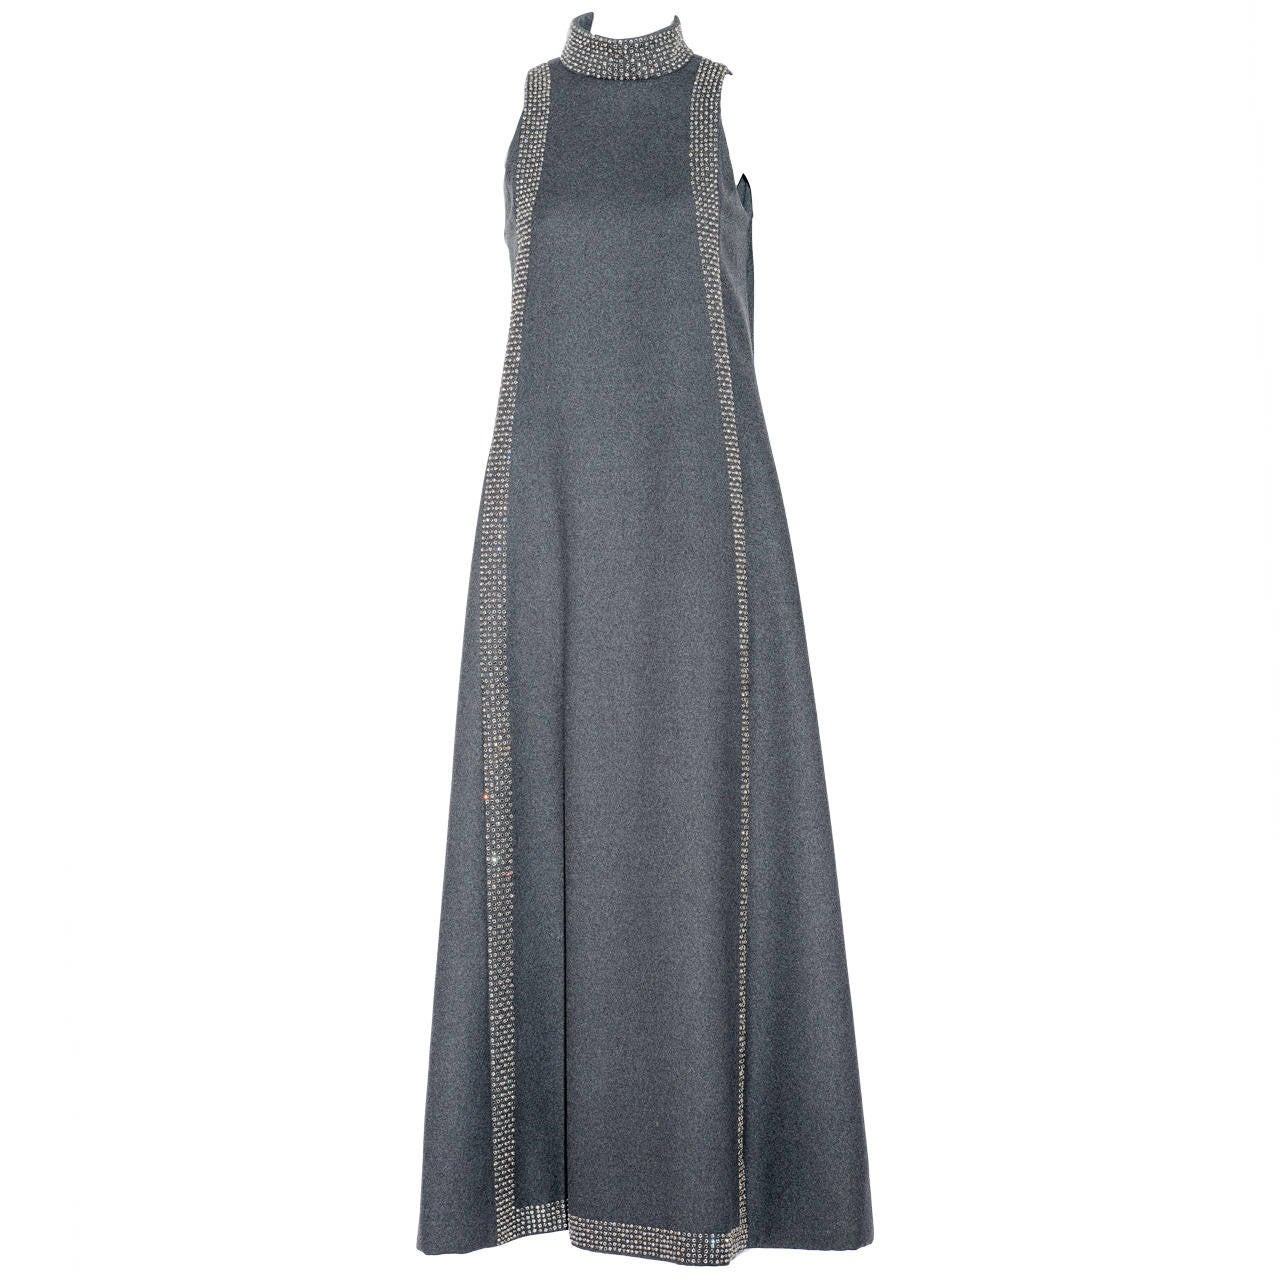 1960s Geoffrey Beene Museum Grey Sleeveles Wool Dress with Rhinestones Colla